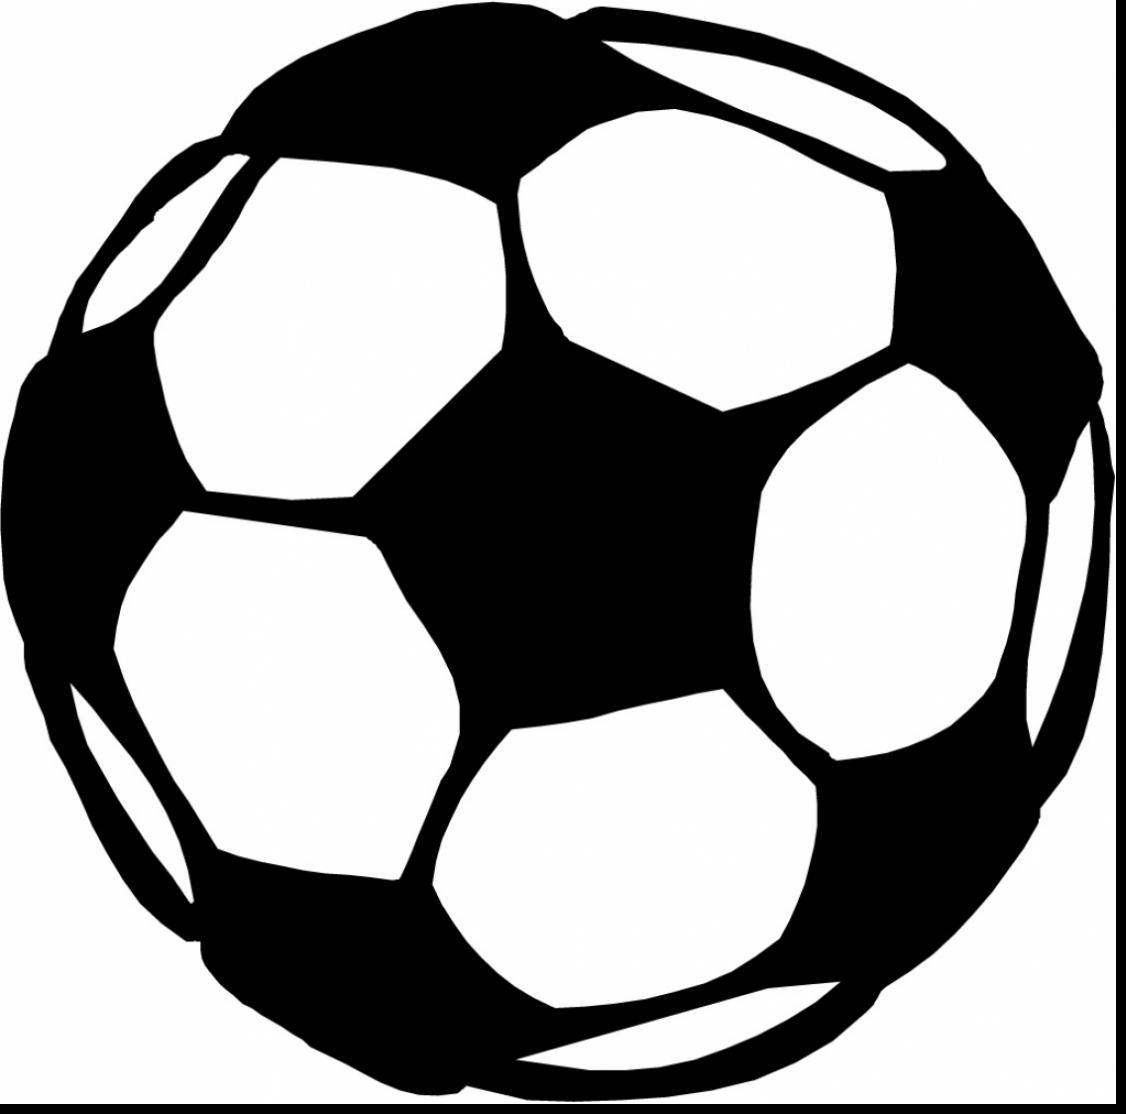 1126x1114 Brilliant Soccer Player Outline With Soccer Ball Coloring Page